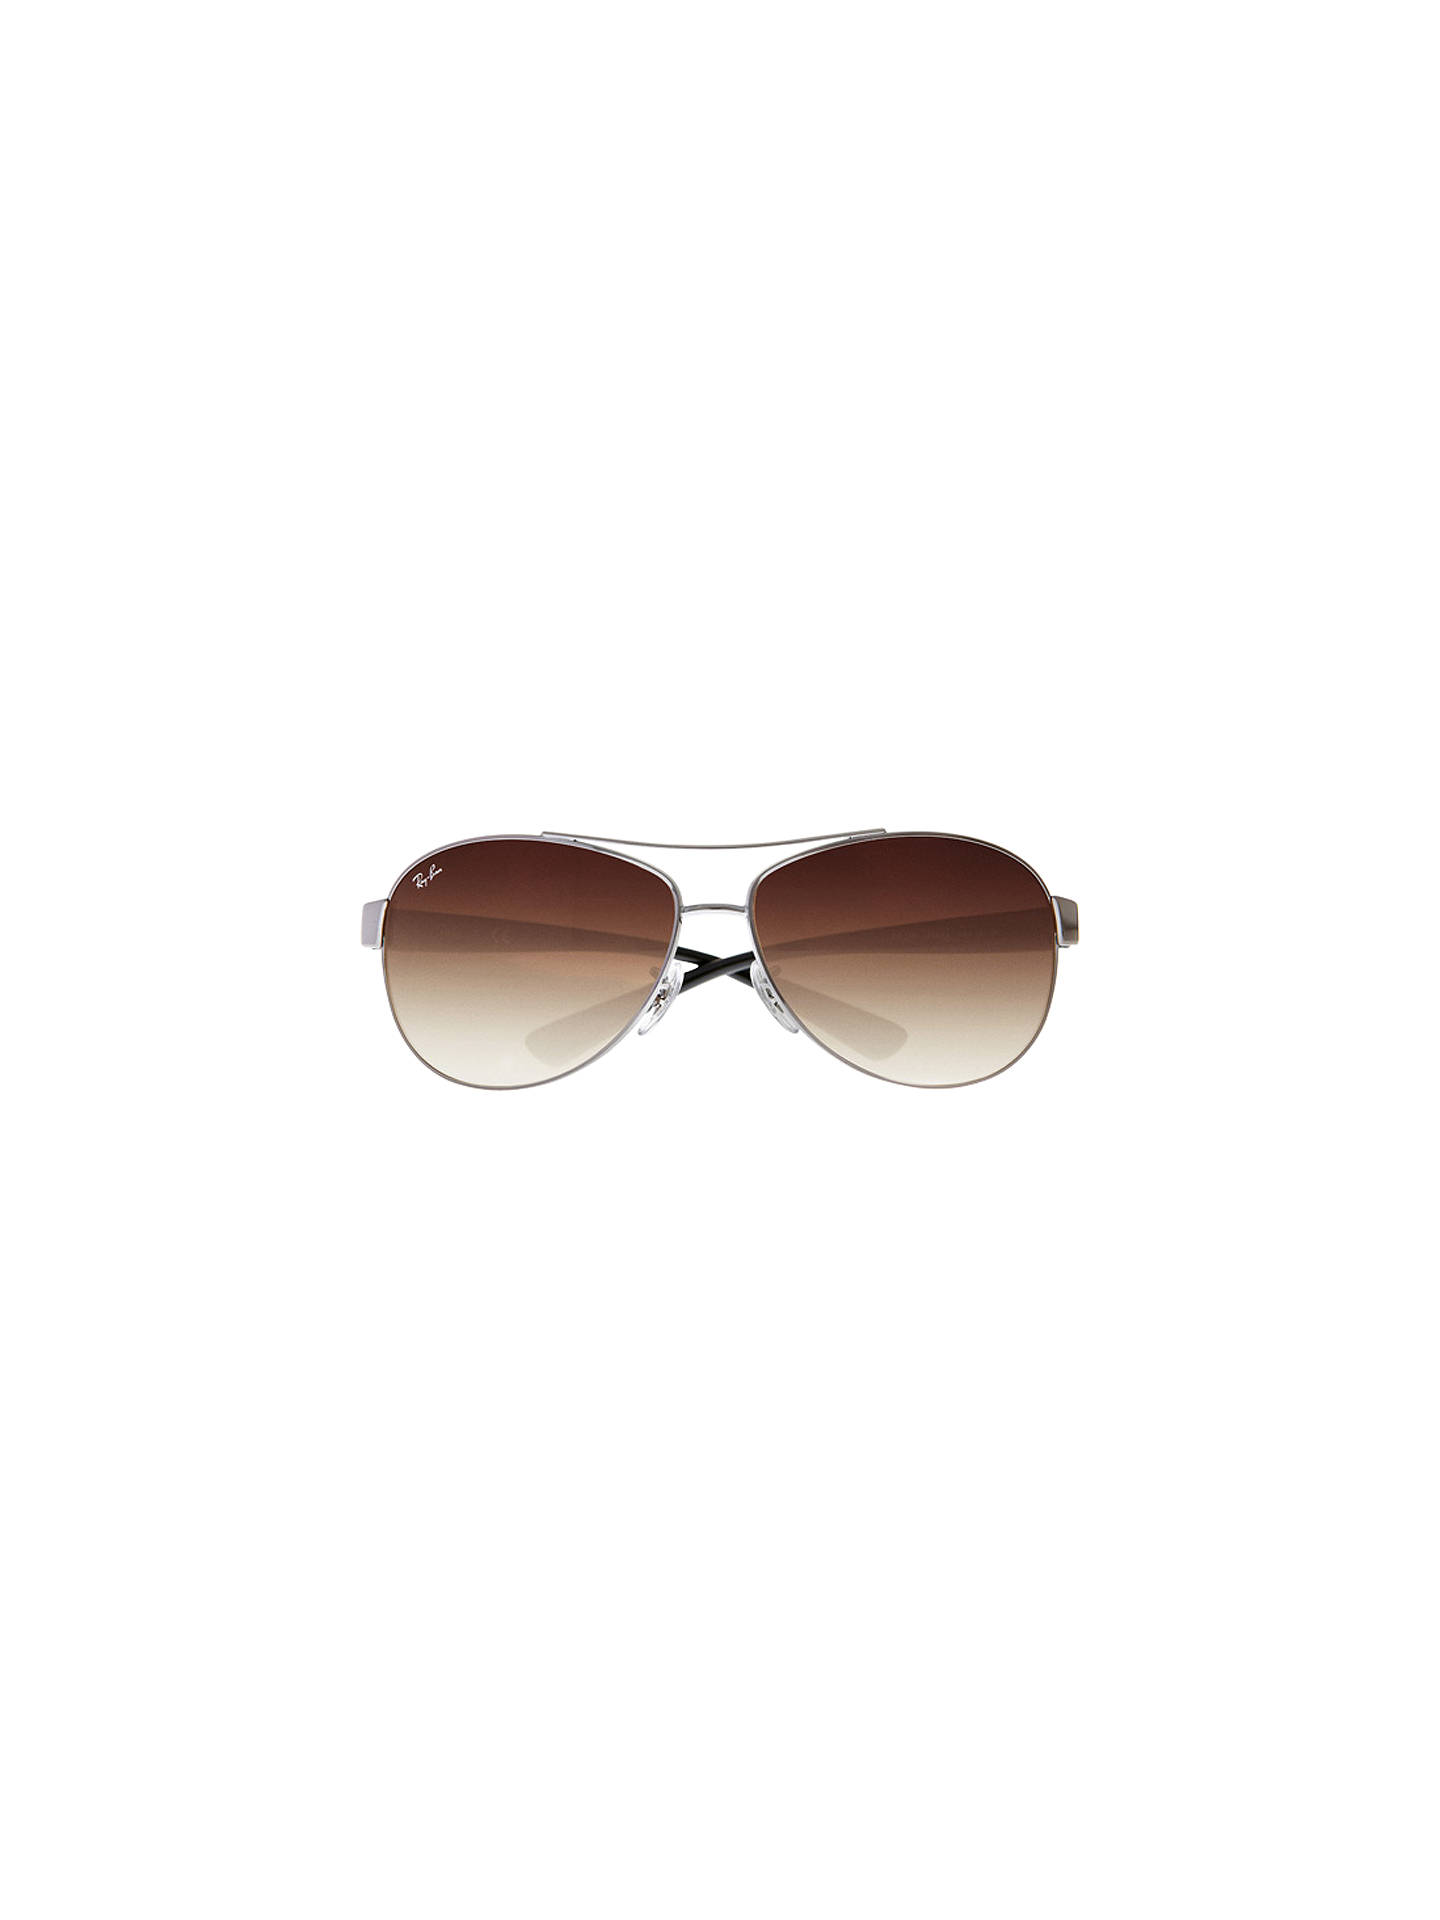 BuyRay-Ban RB3386 Aviator Sunglasses, Gunmetal Online at johnlewis.com